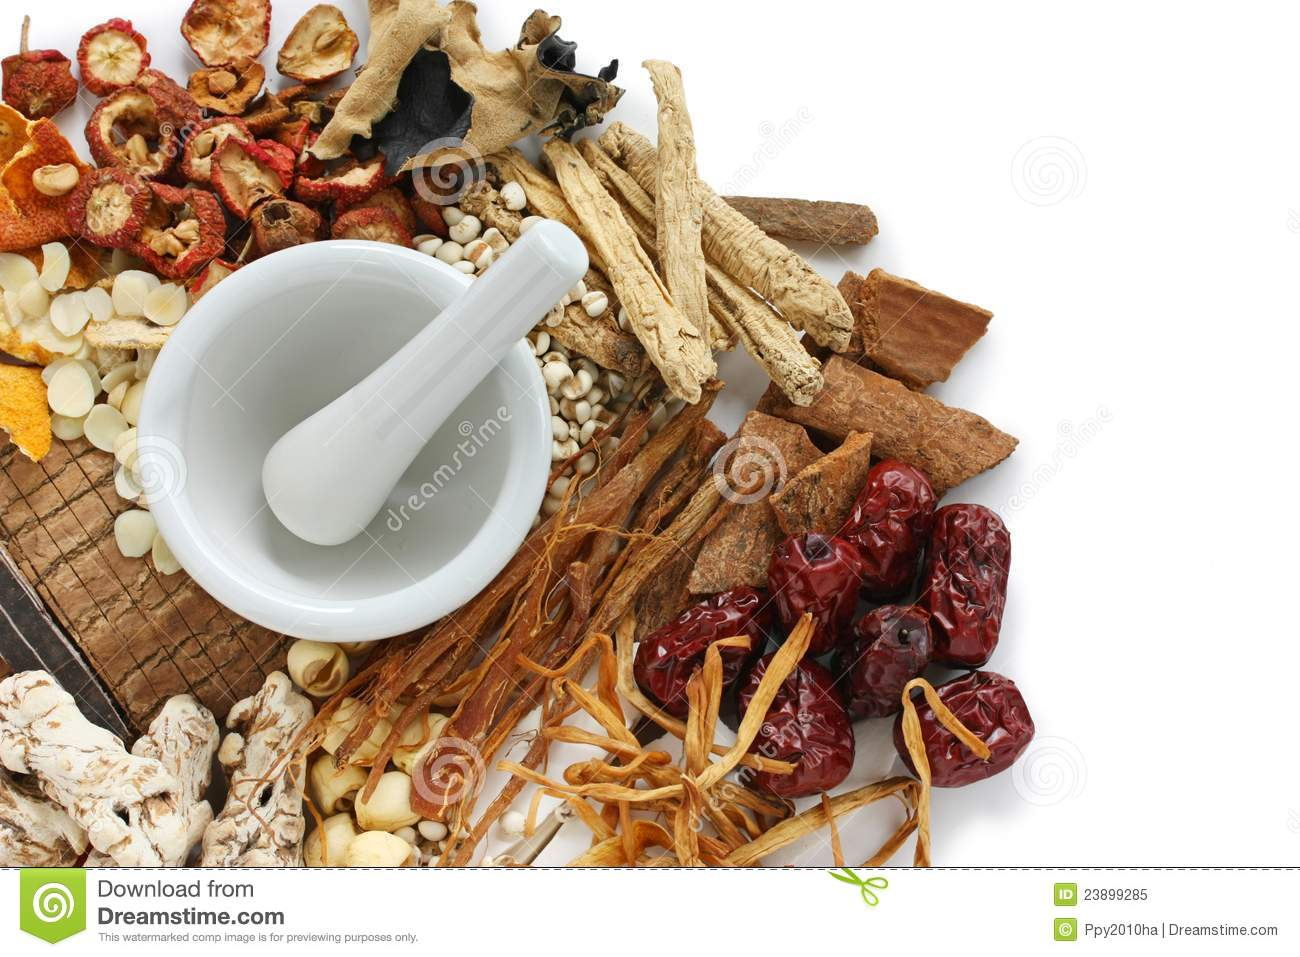 traditional chinese medicine and ayurveda Traditional chinese medicine (tcm) practitioners use natural herbs, medicated bath, acupuncture etc to treat kidney disease, which helps improve kidney function naturally.